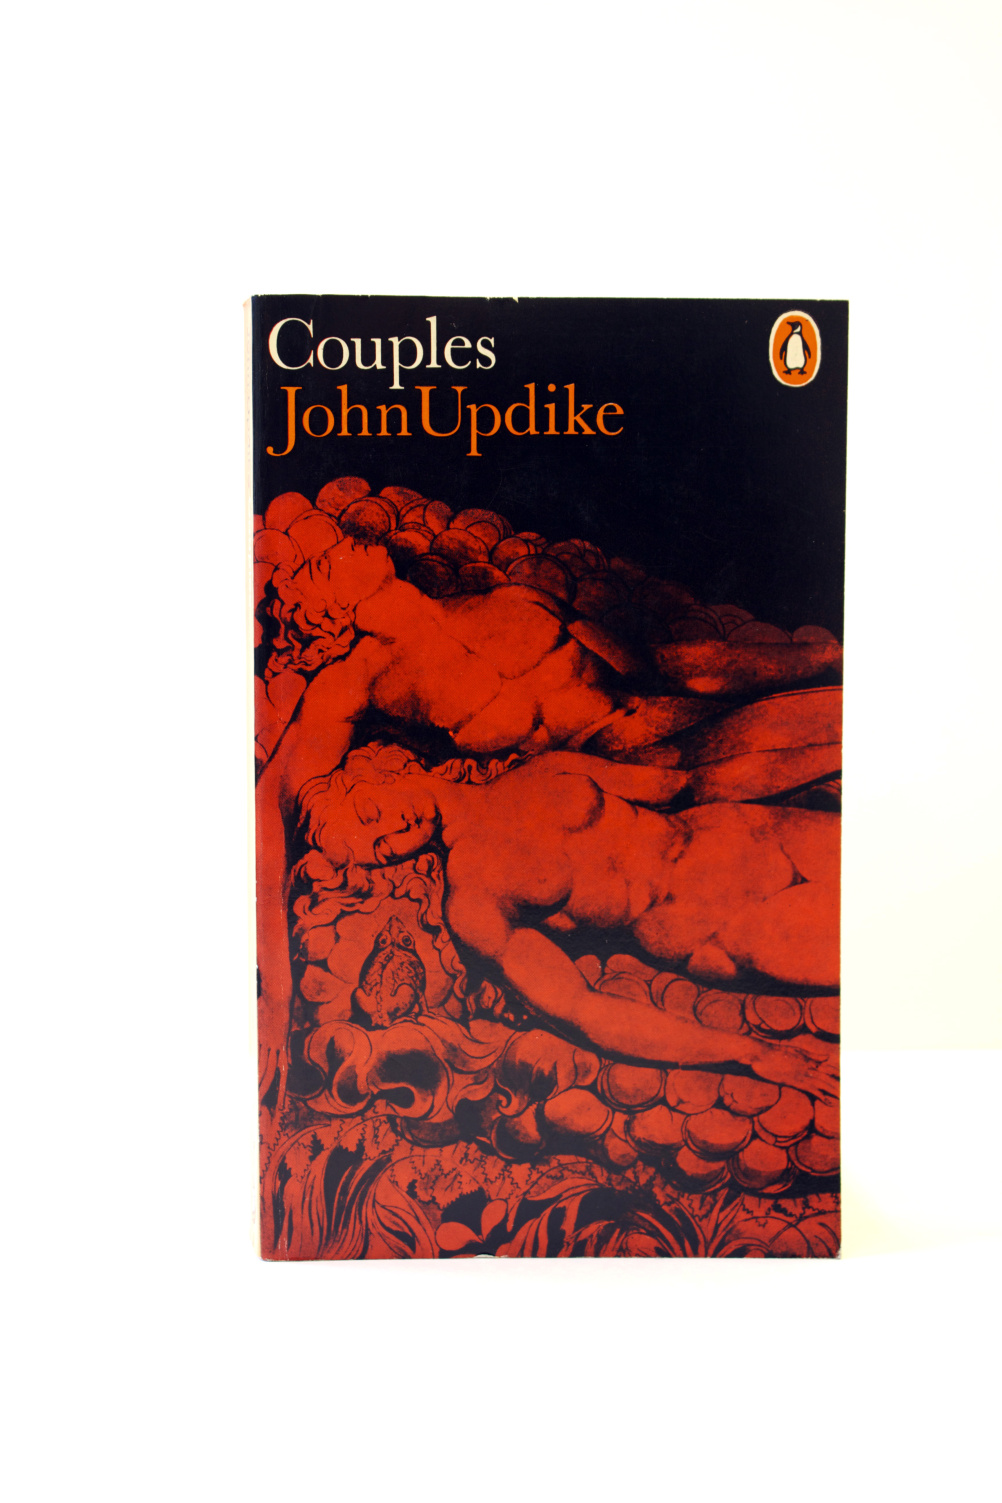 Couples, John Updike